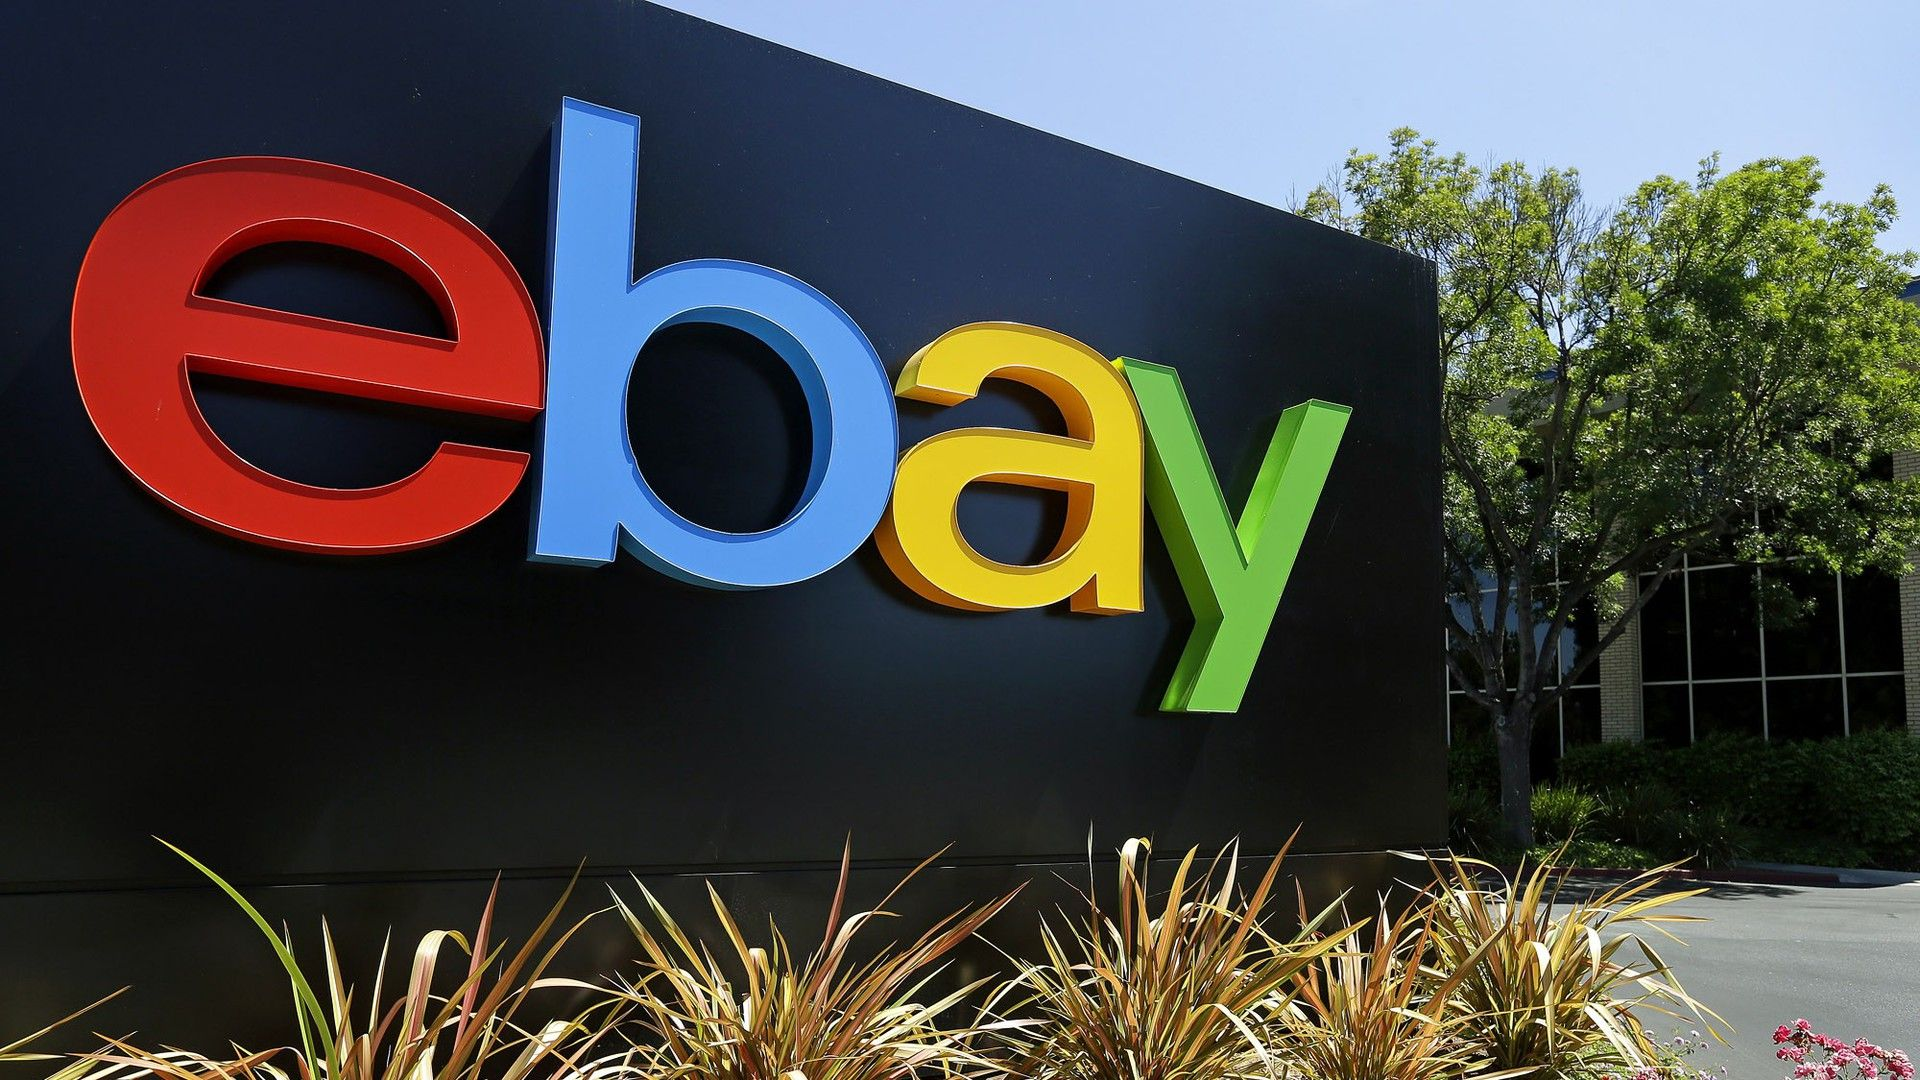 Save 10 Off Everything With This Ebay Voucher Code